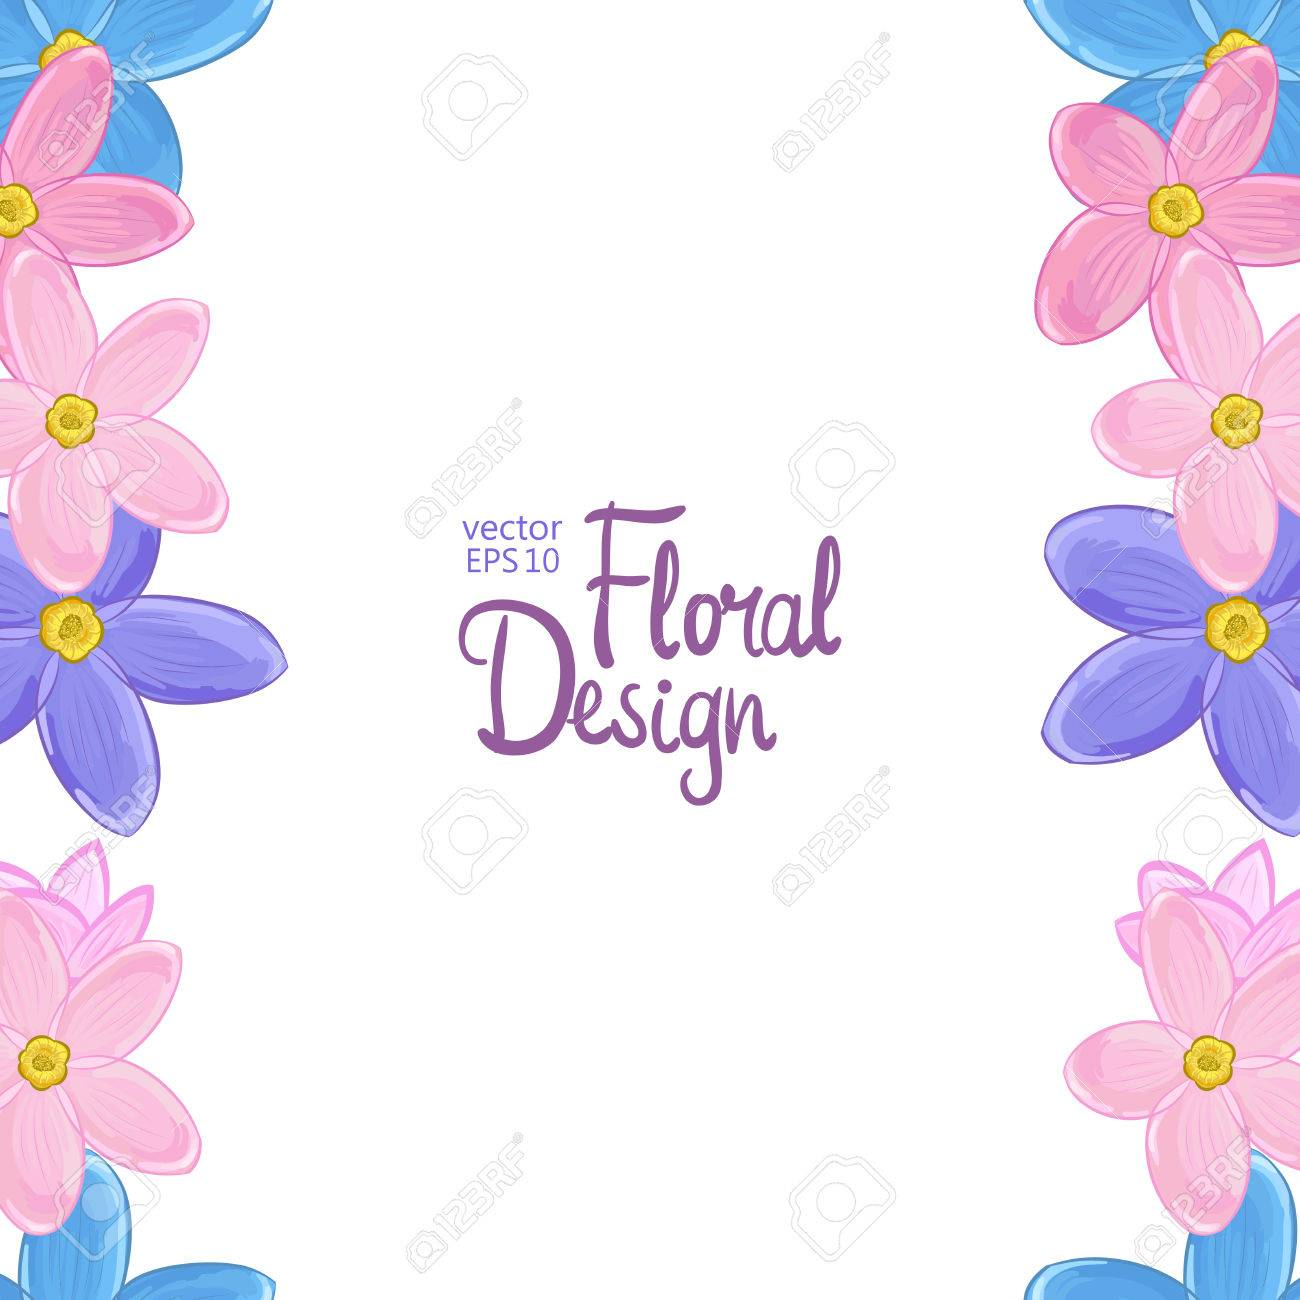 Floral Vertical Border With Blue Pink And Violet Forget Me Not Flowers On